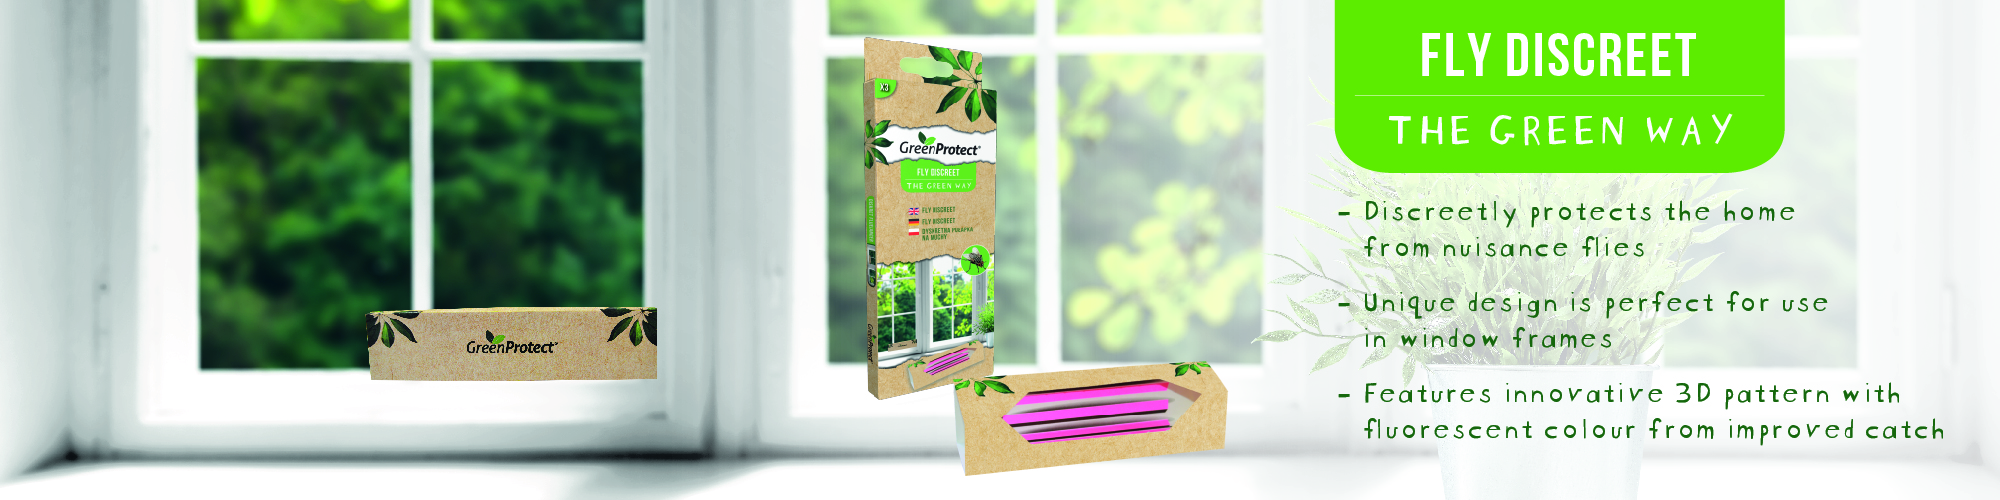 Green Protect Fly Discreet EN banner